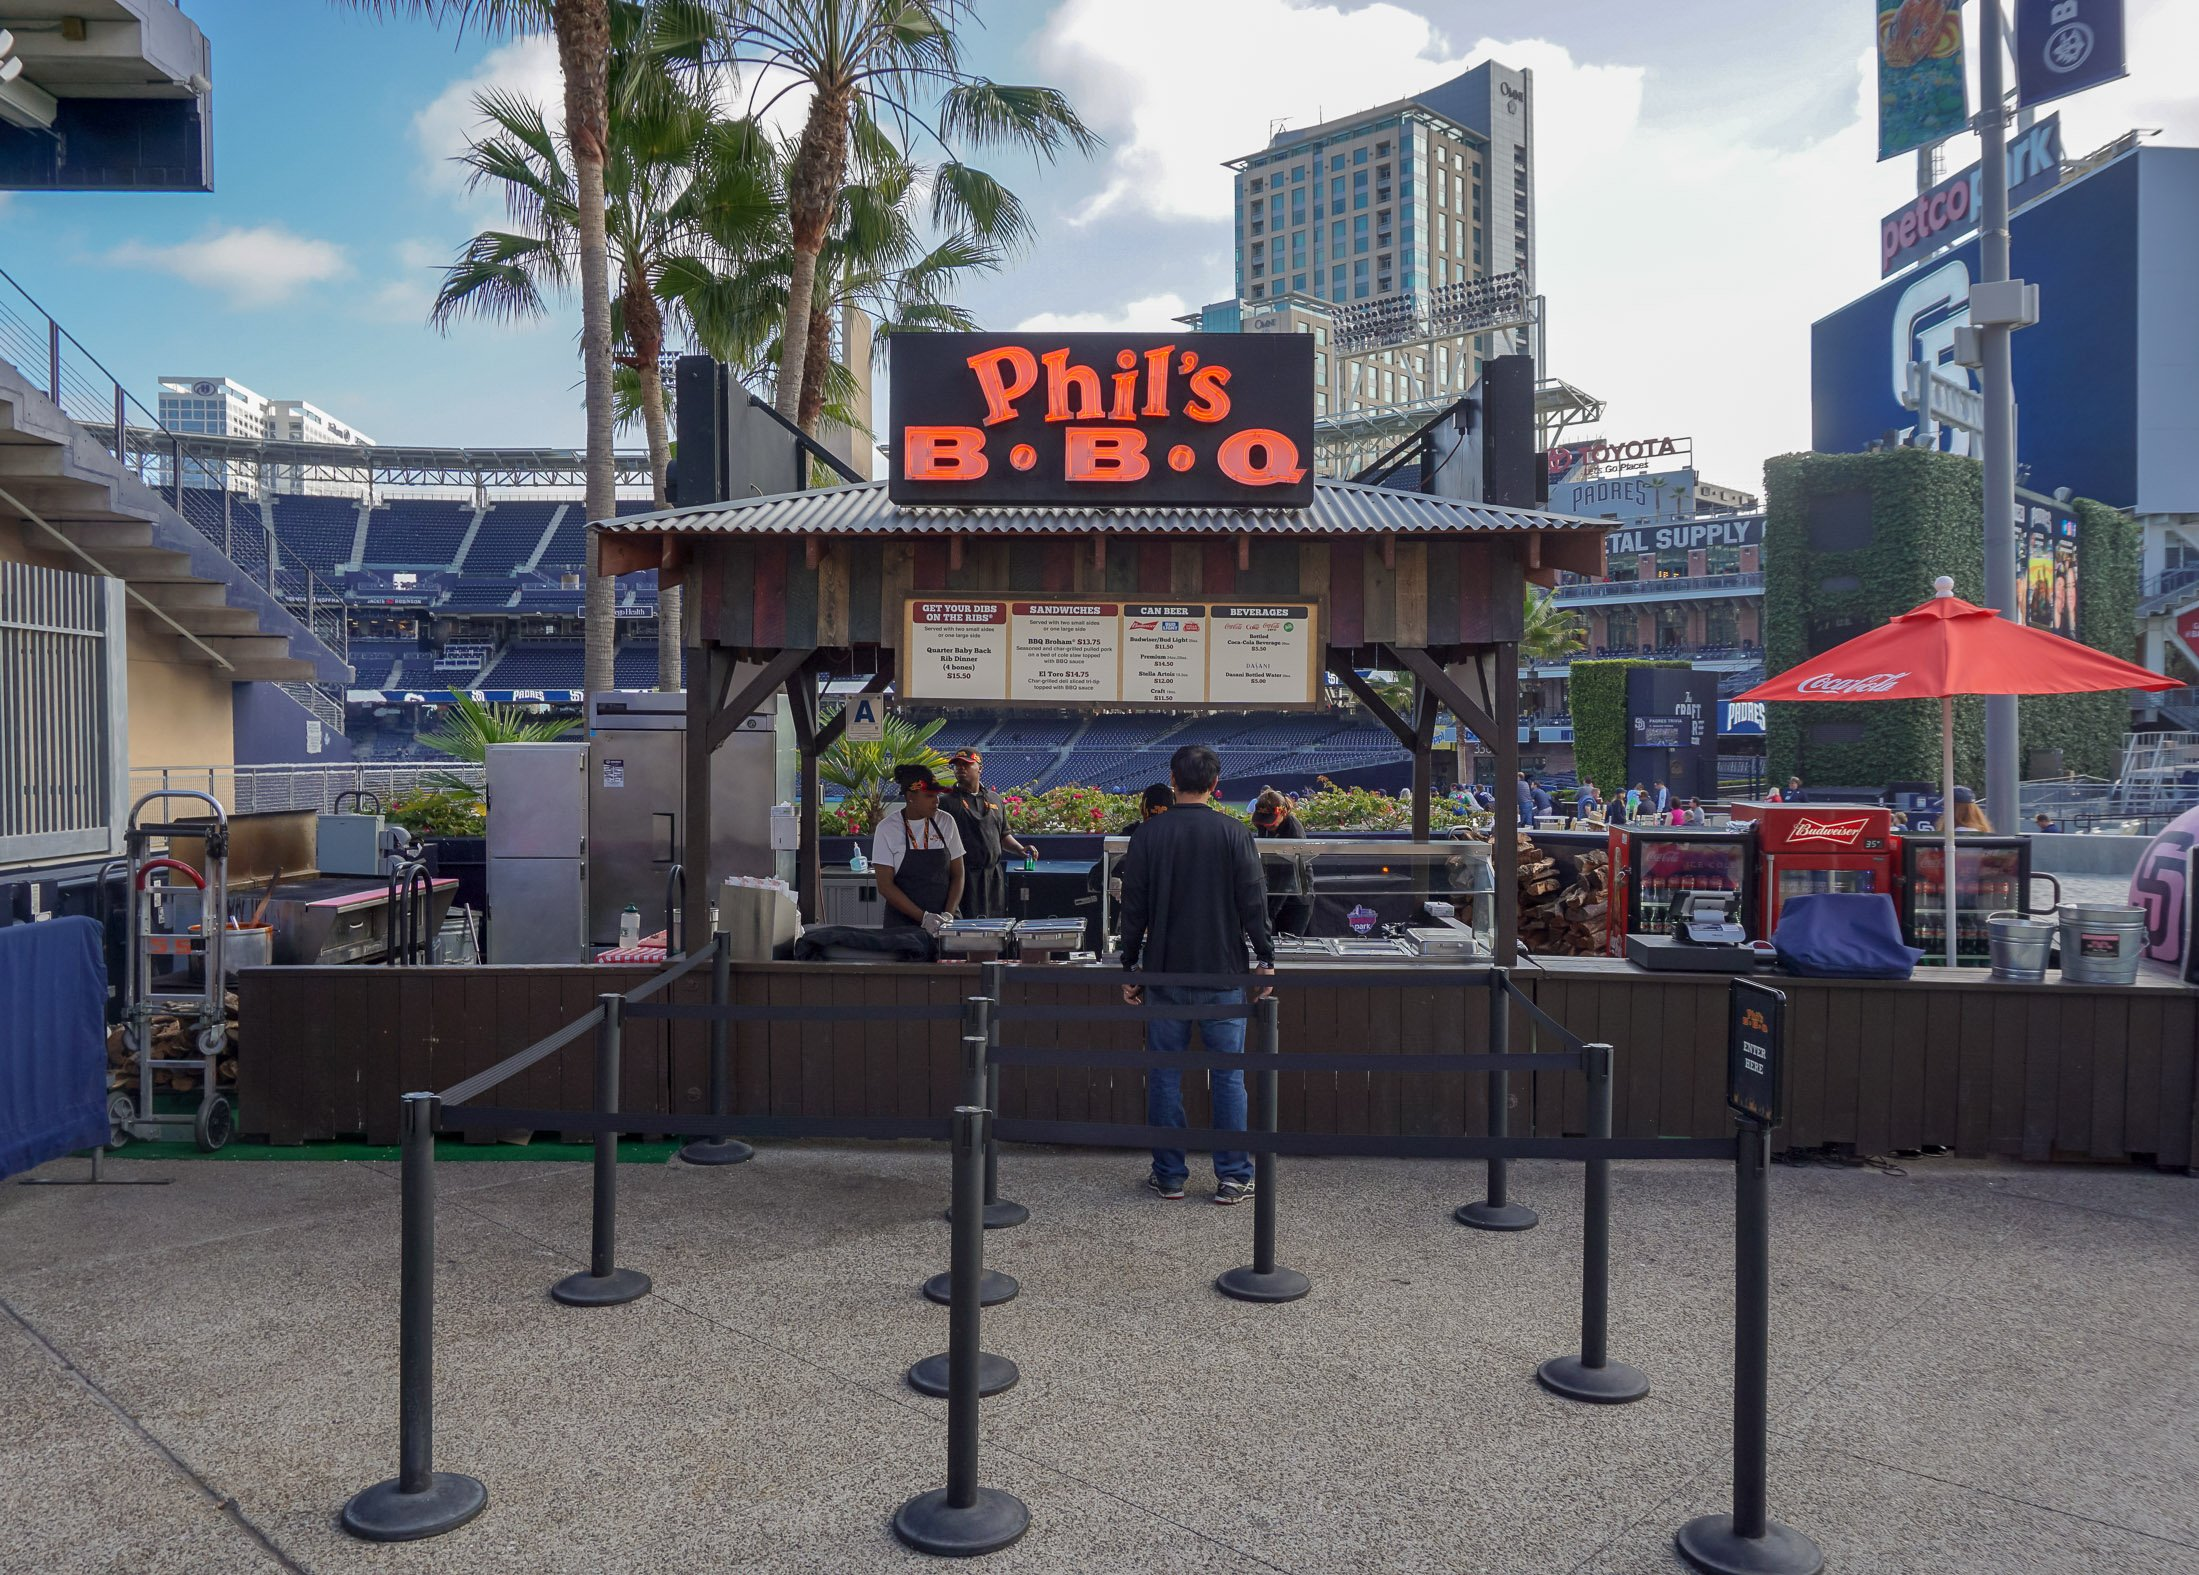 Phil's BBQ at PETCO Park in San Diego